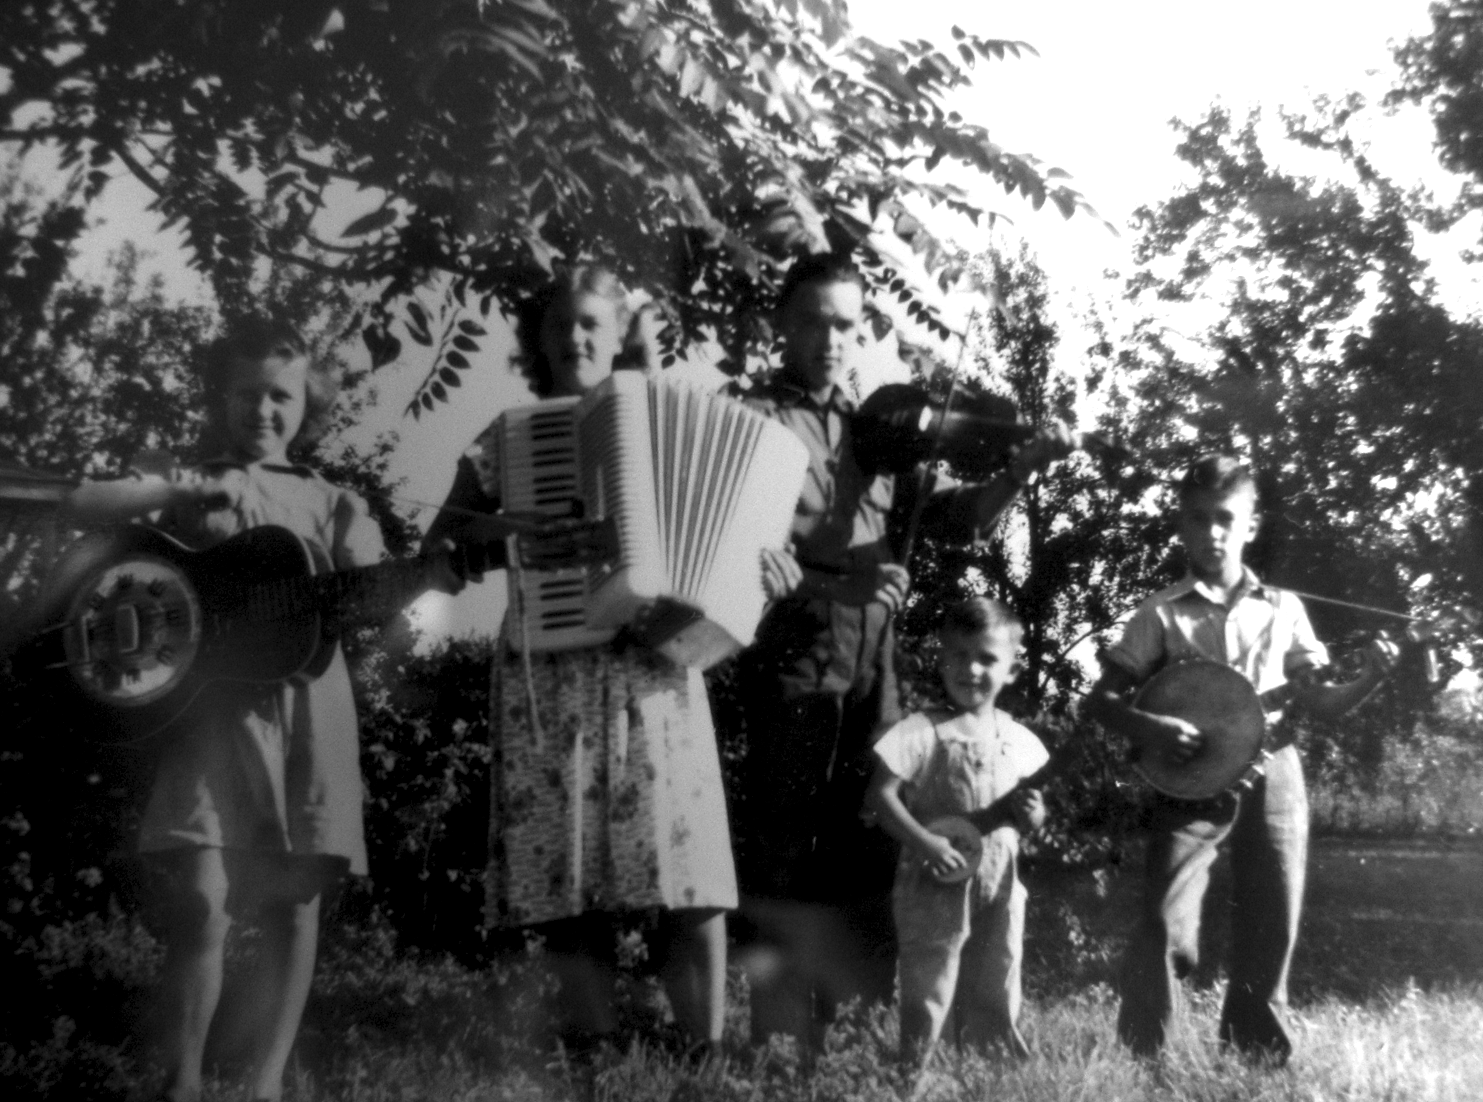 Bill (youngest) playing music with his siblings